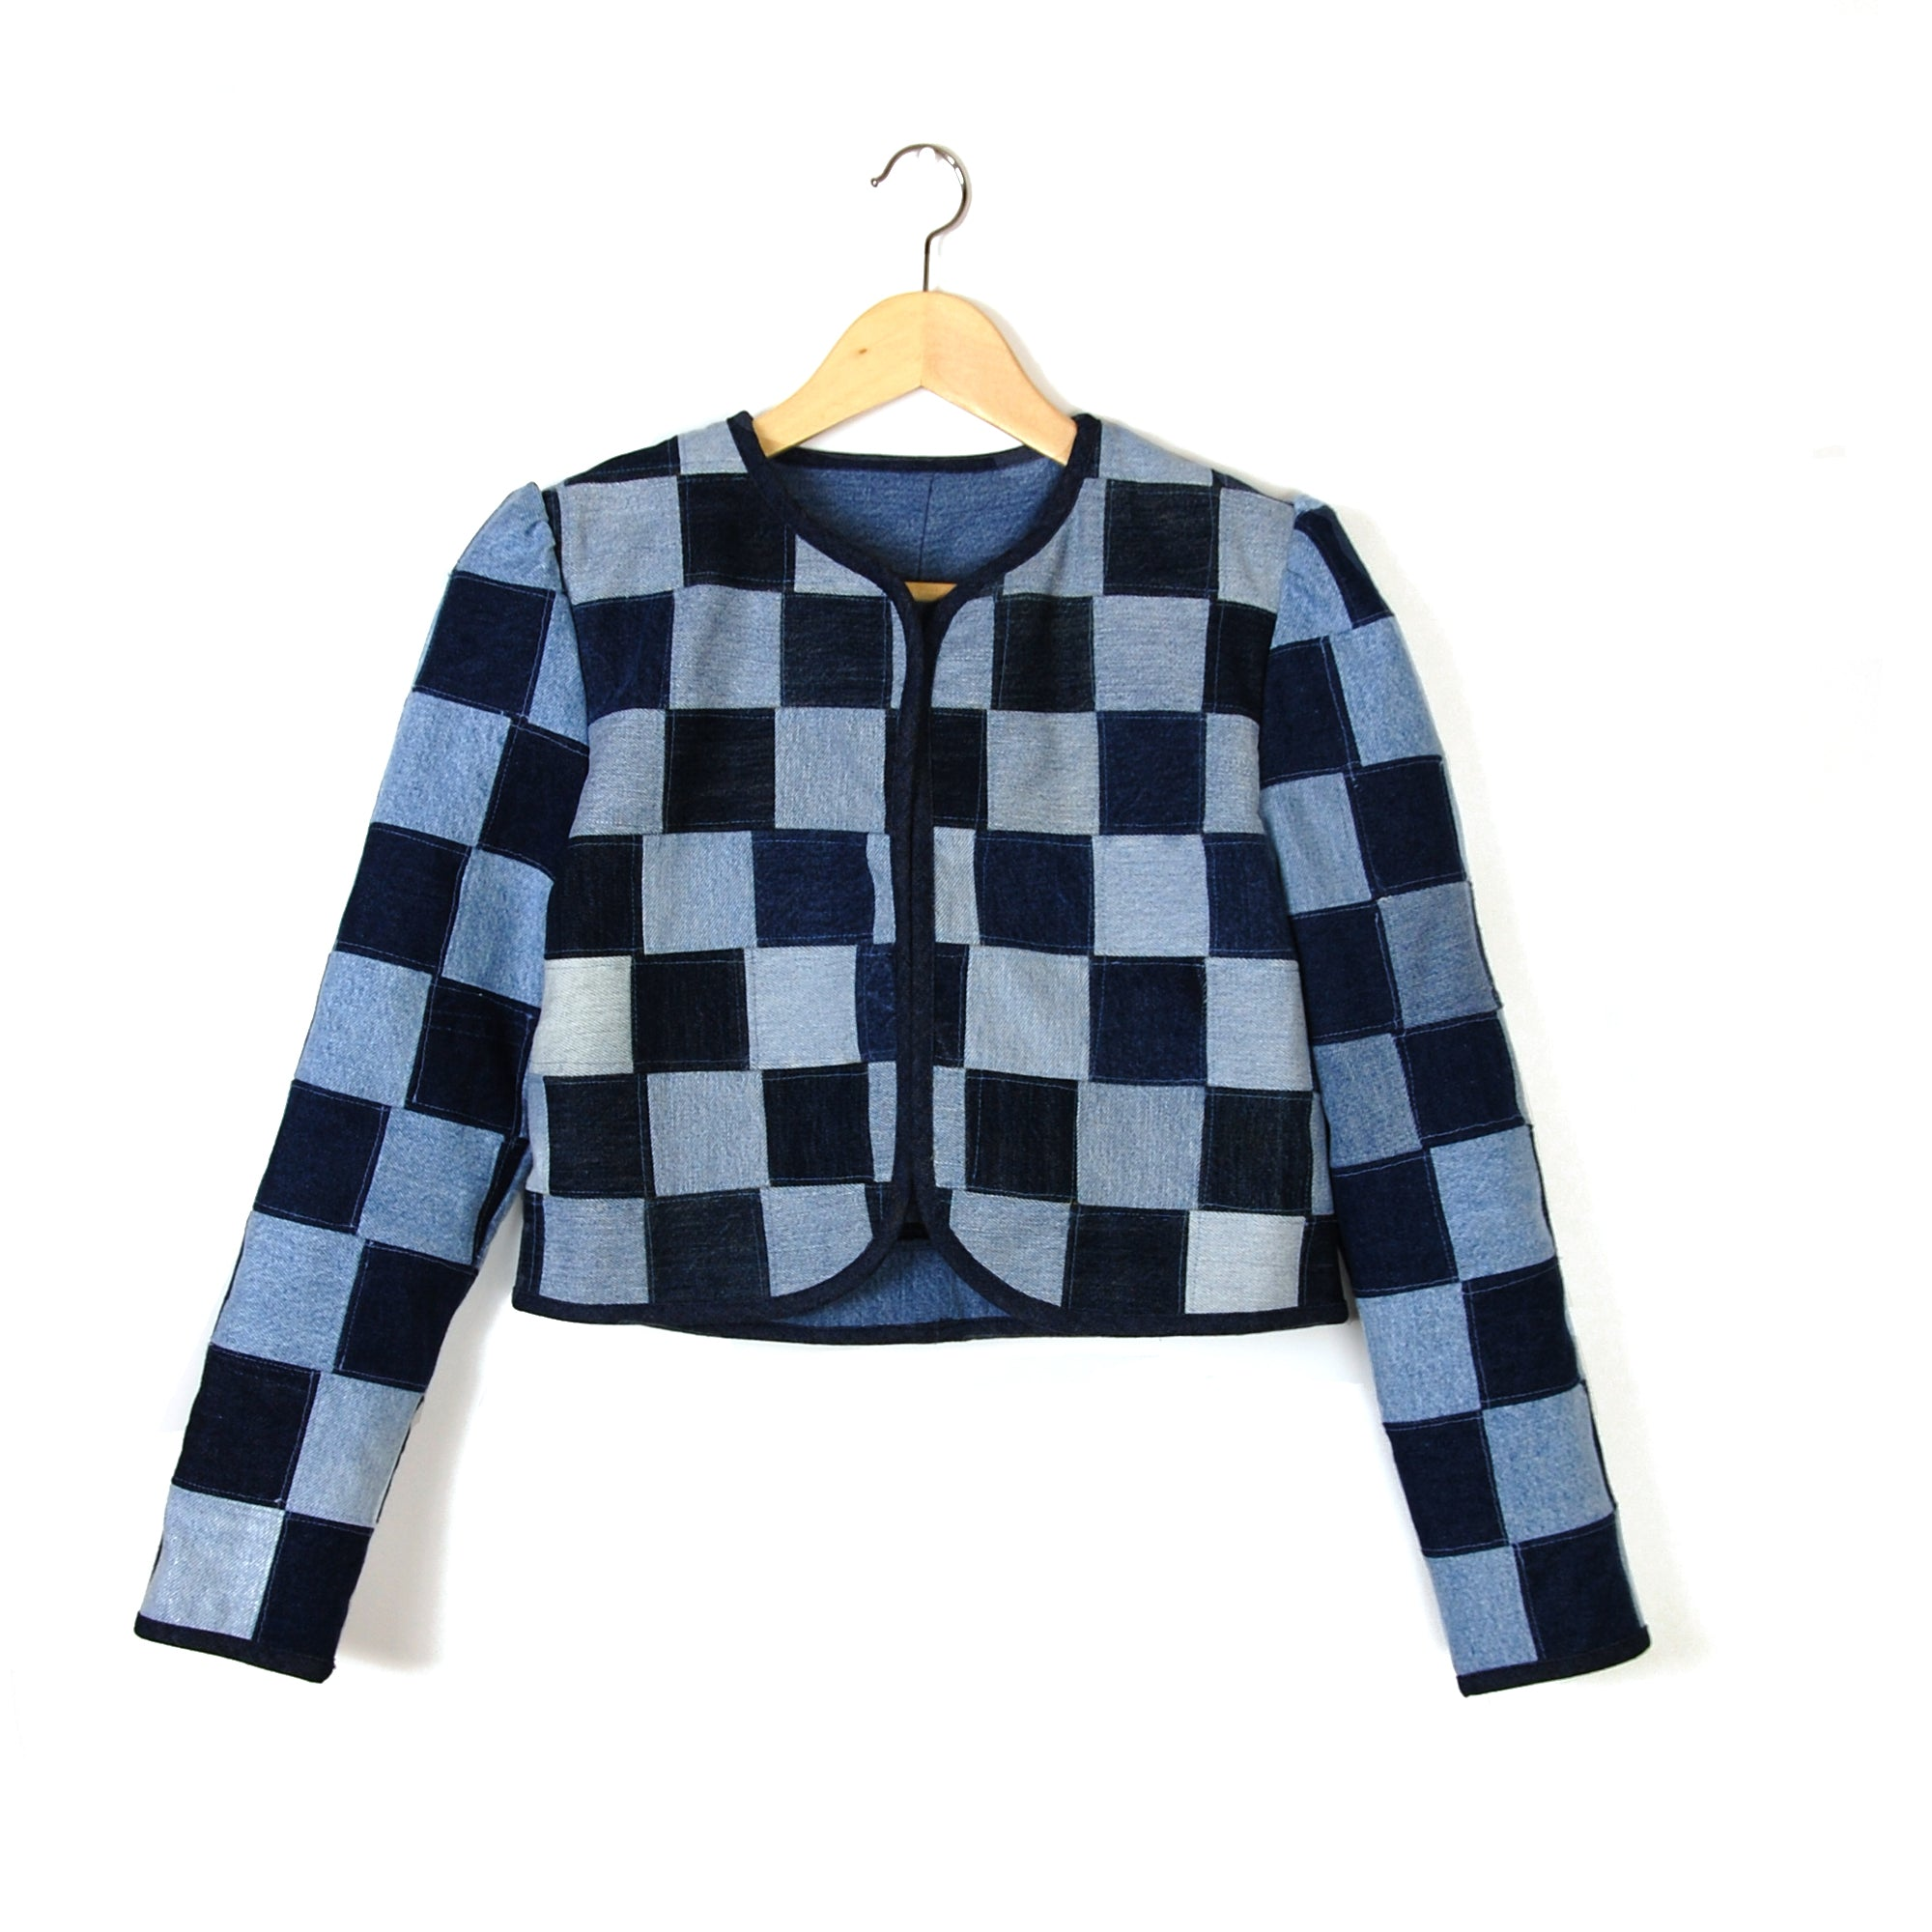 LITTLE CHECK ENERGY 2 PATCHWORK JACKET - Late to the Party